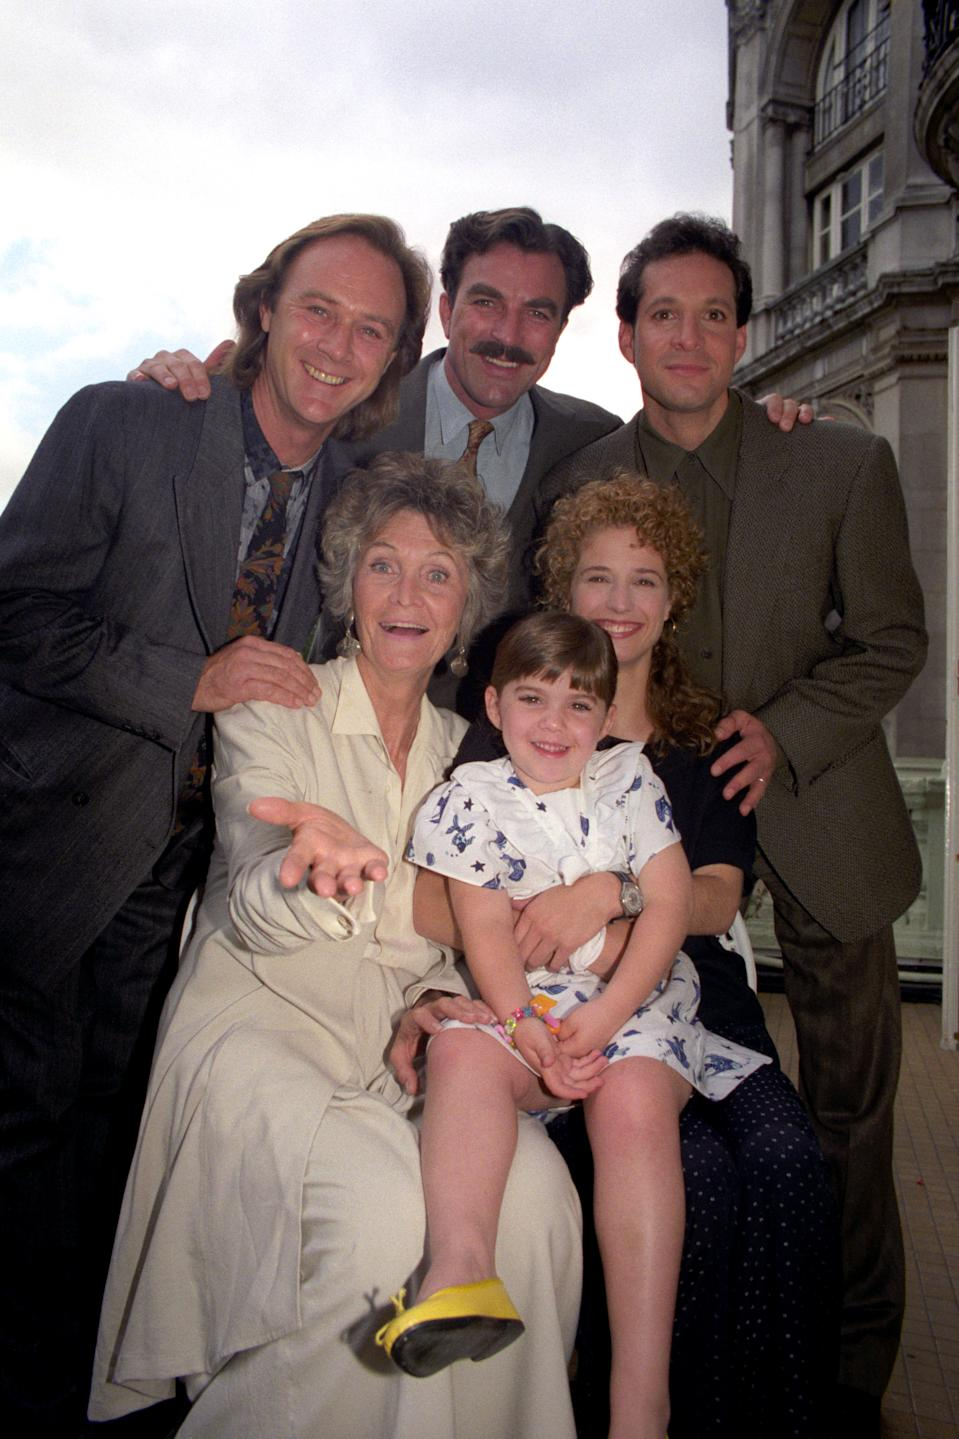 "The cast of the film ""Three Men and a Little Lady"" in London before shooting for three weeks on location in Stratford-upon-Avon. From left (back row) Christopher Cazenove, Tom Selleck and Steve Guttenberg. Front Row: Sheila Hancock, Robin Wiseman (child) and Nancy Travis (right).   (Photo by Sean Dempsey/PA Images via Getty Images)"